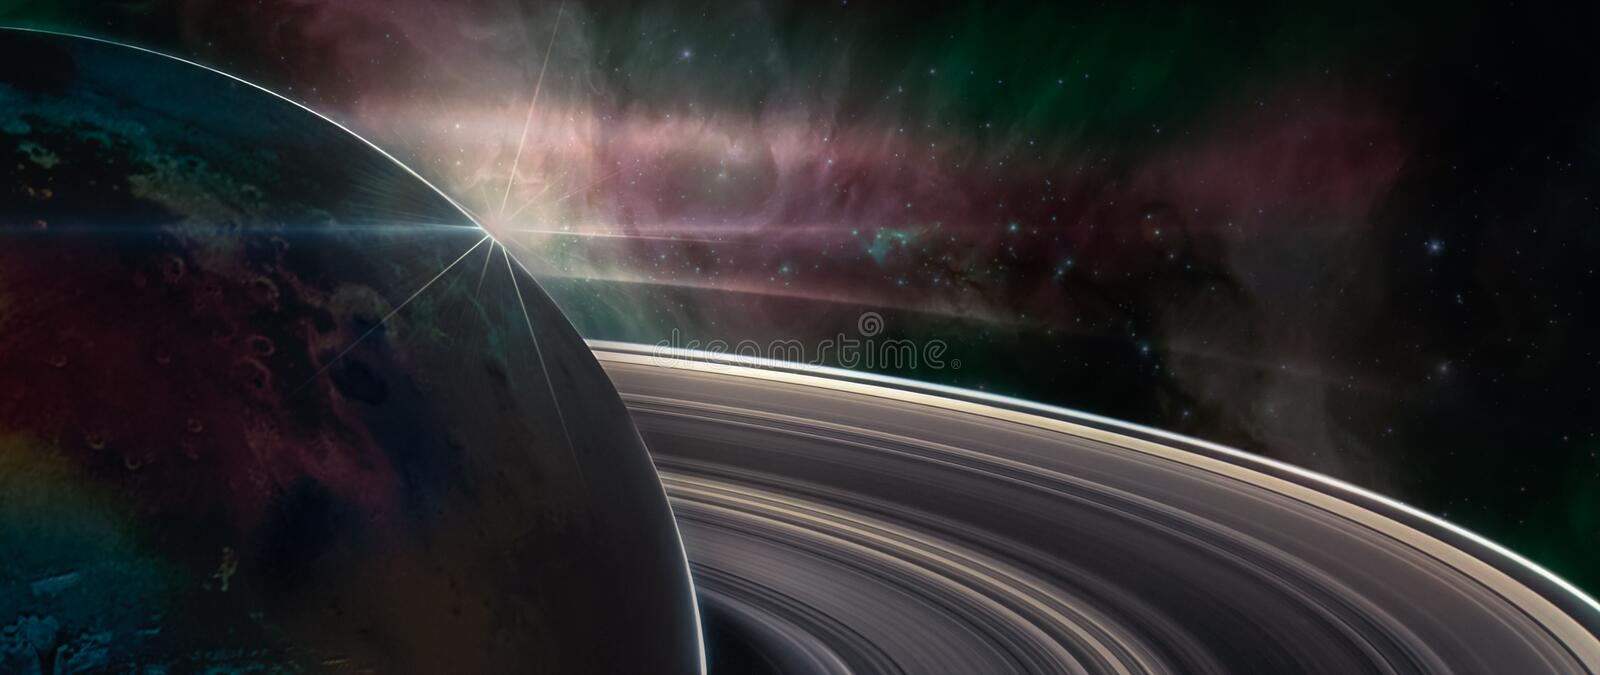 Saturn planet with rings in outer space stock photos